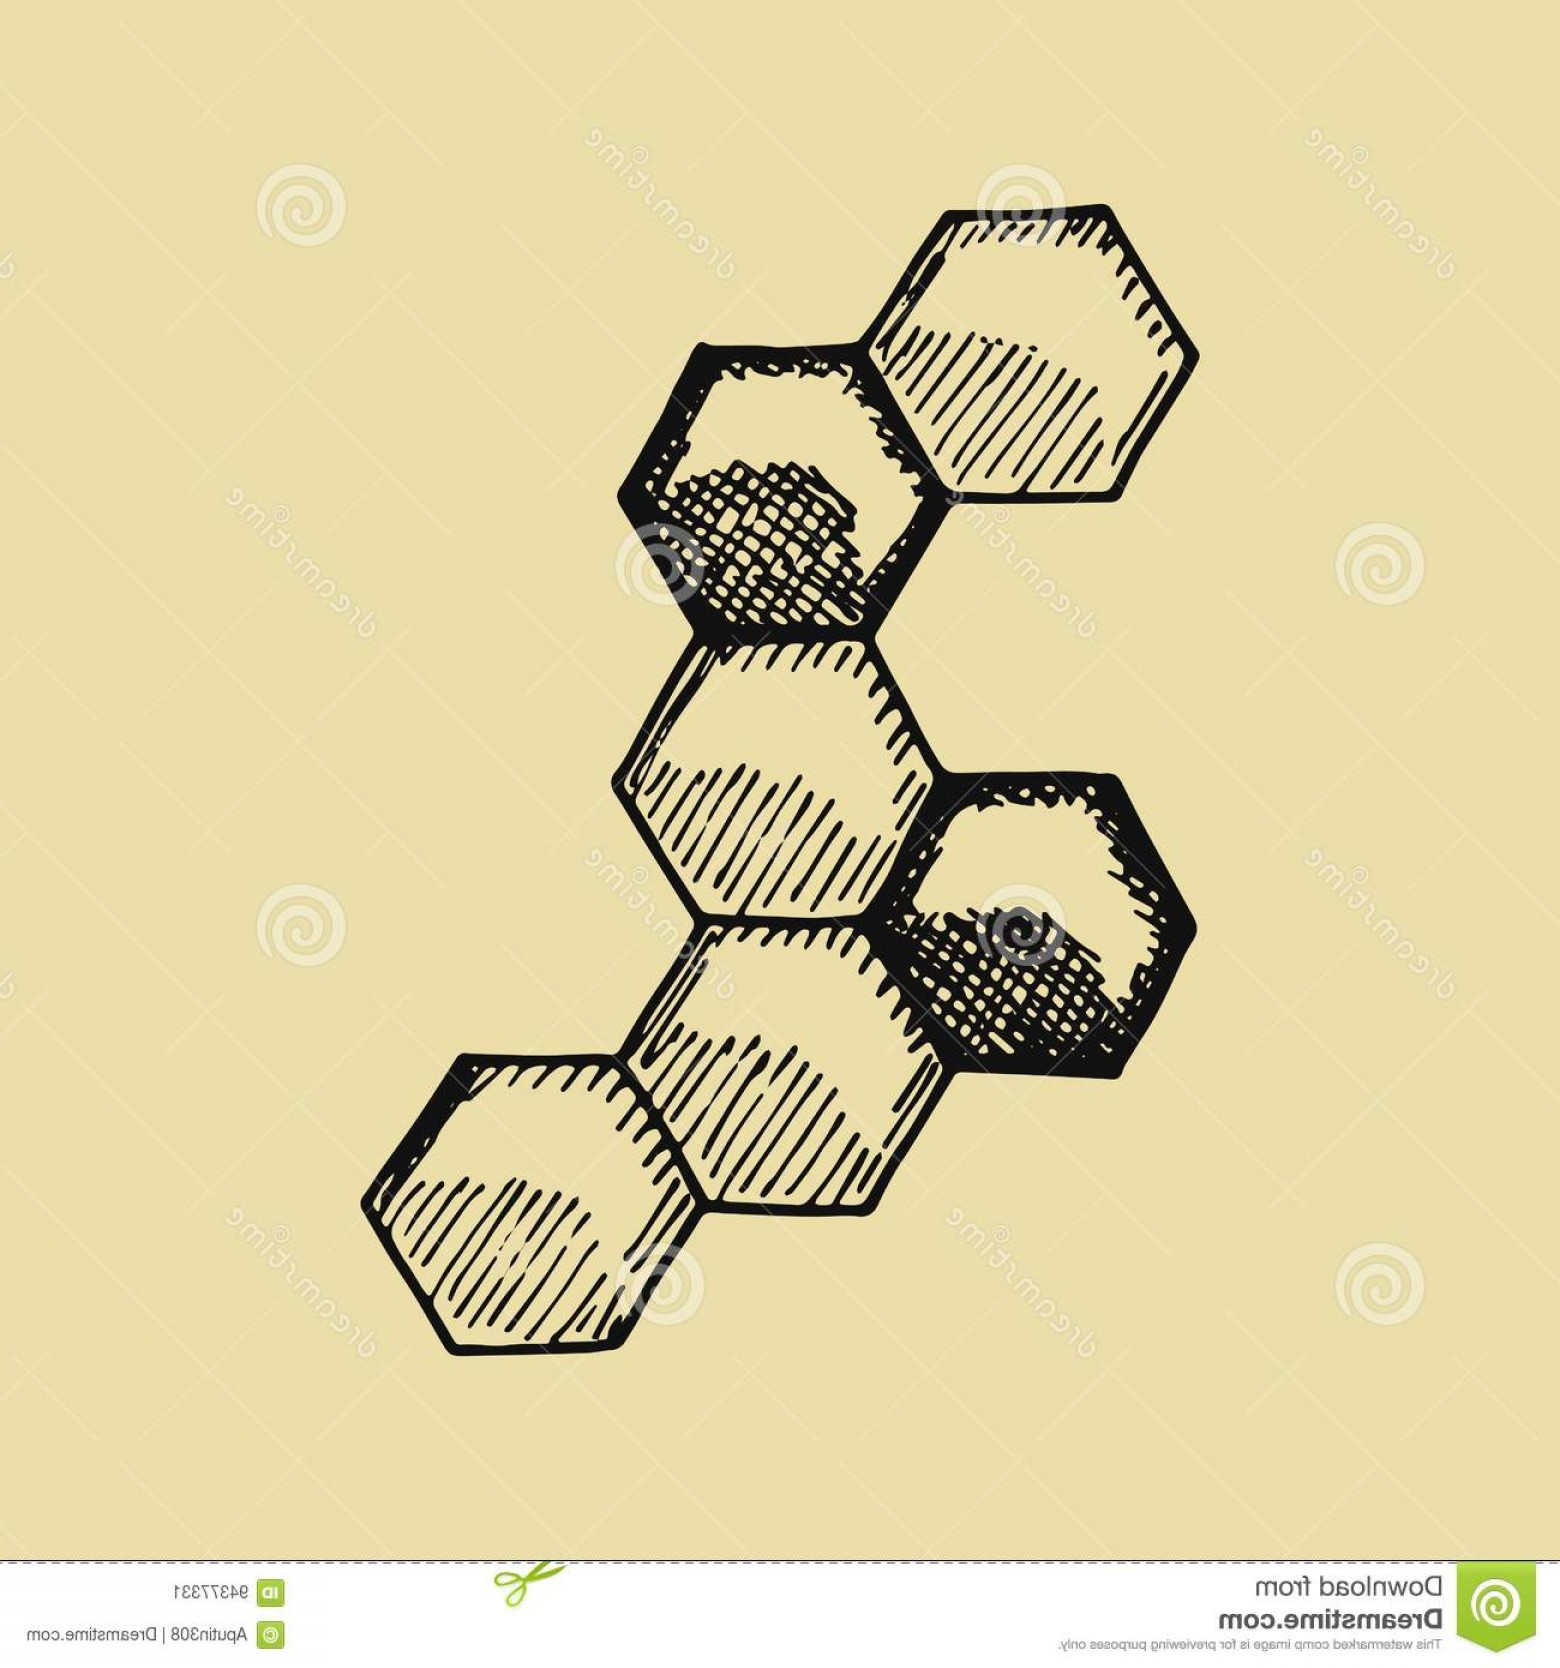 Bee Drawing Vector: Stock Illustration Bee Honeycomb Hand Drawing Vector Illustration Icon Image